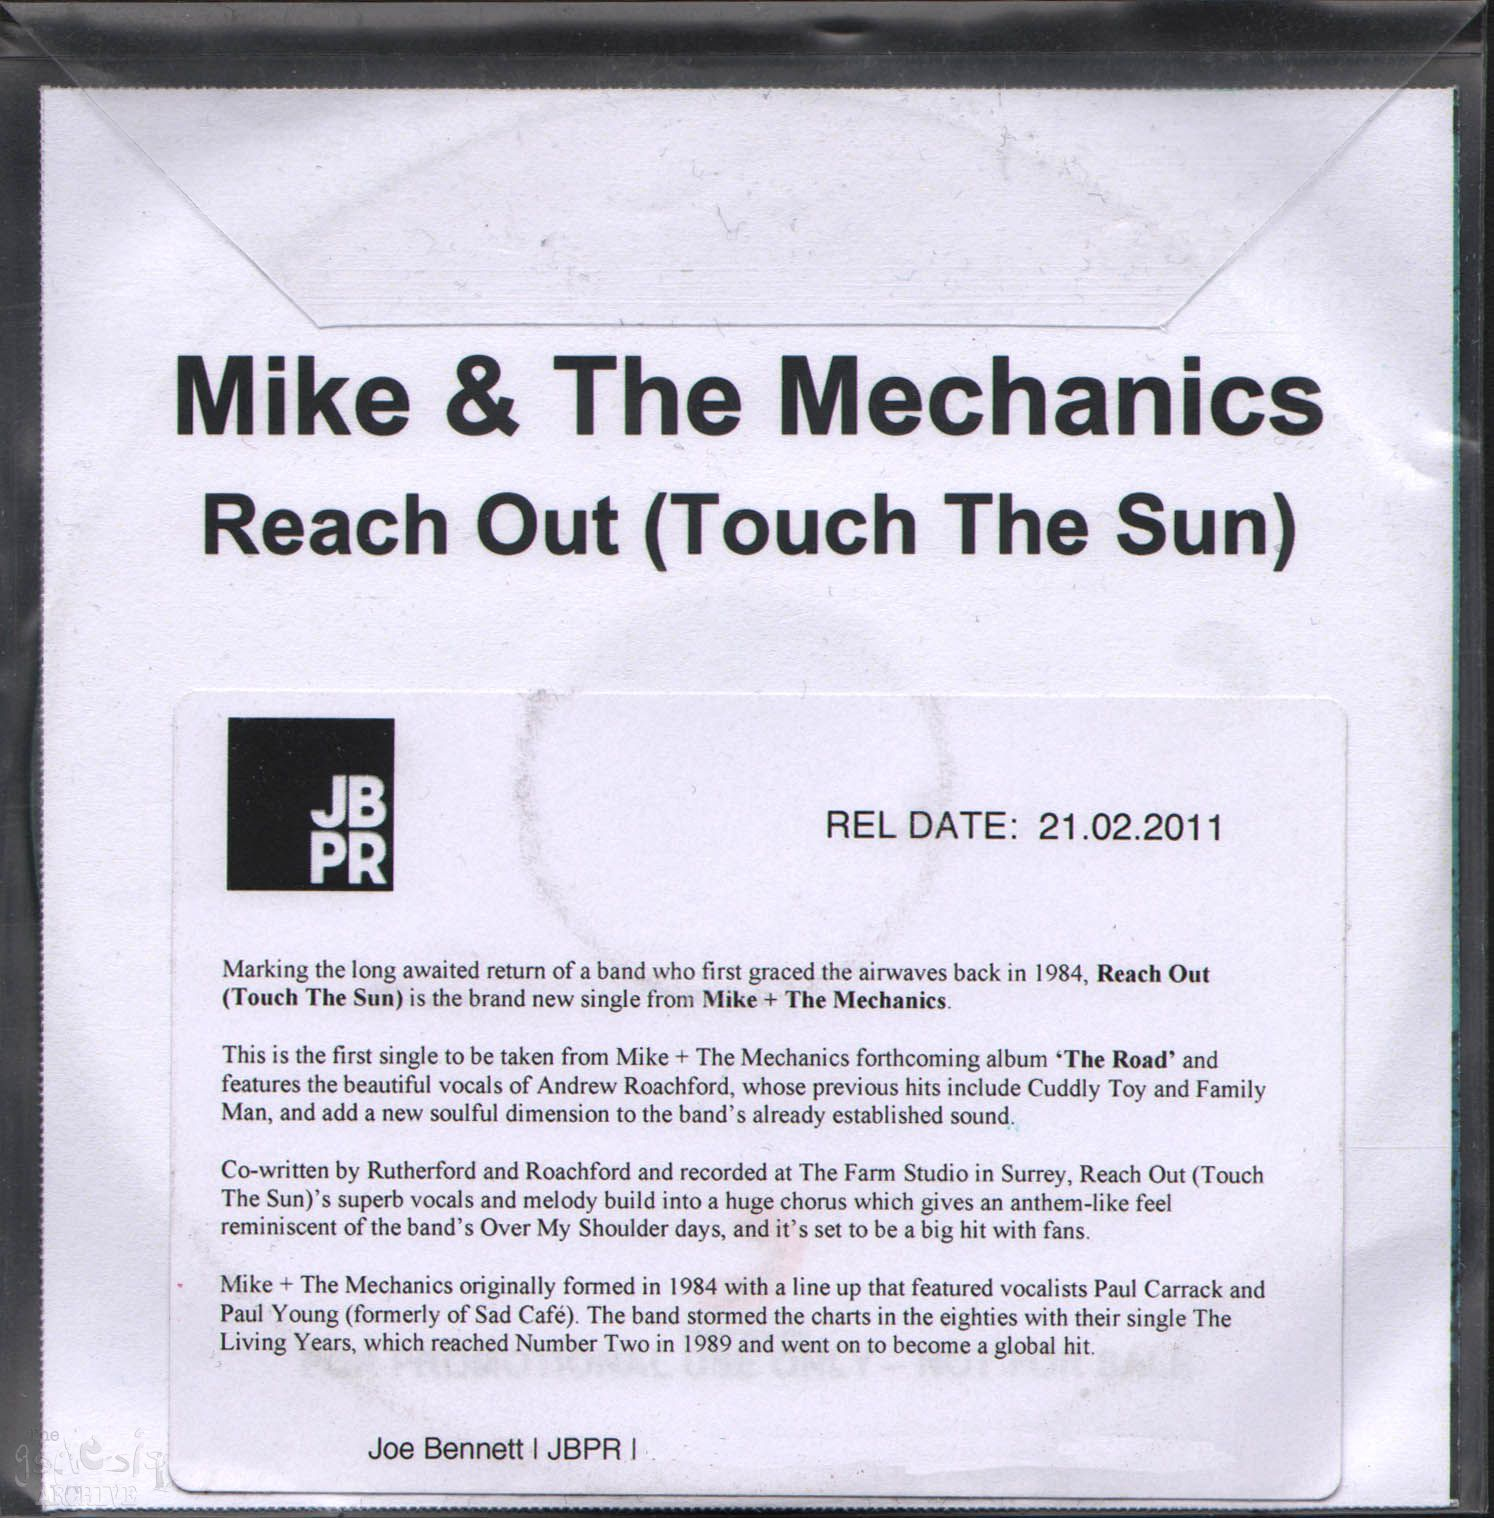 Out and touch the sun mike and the mechanics promo single